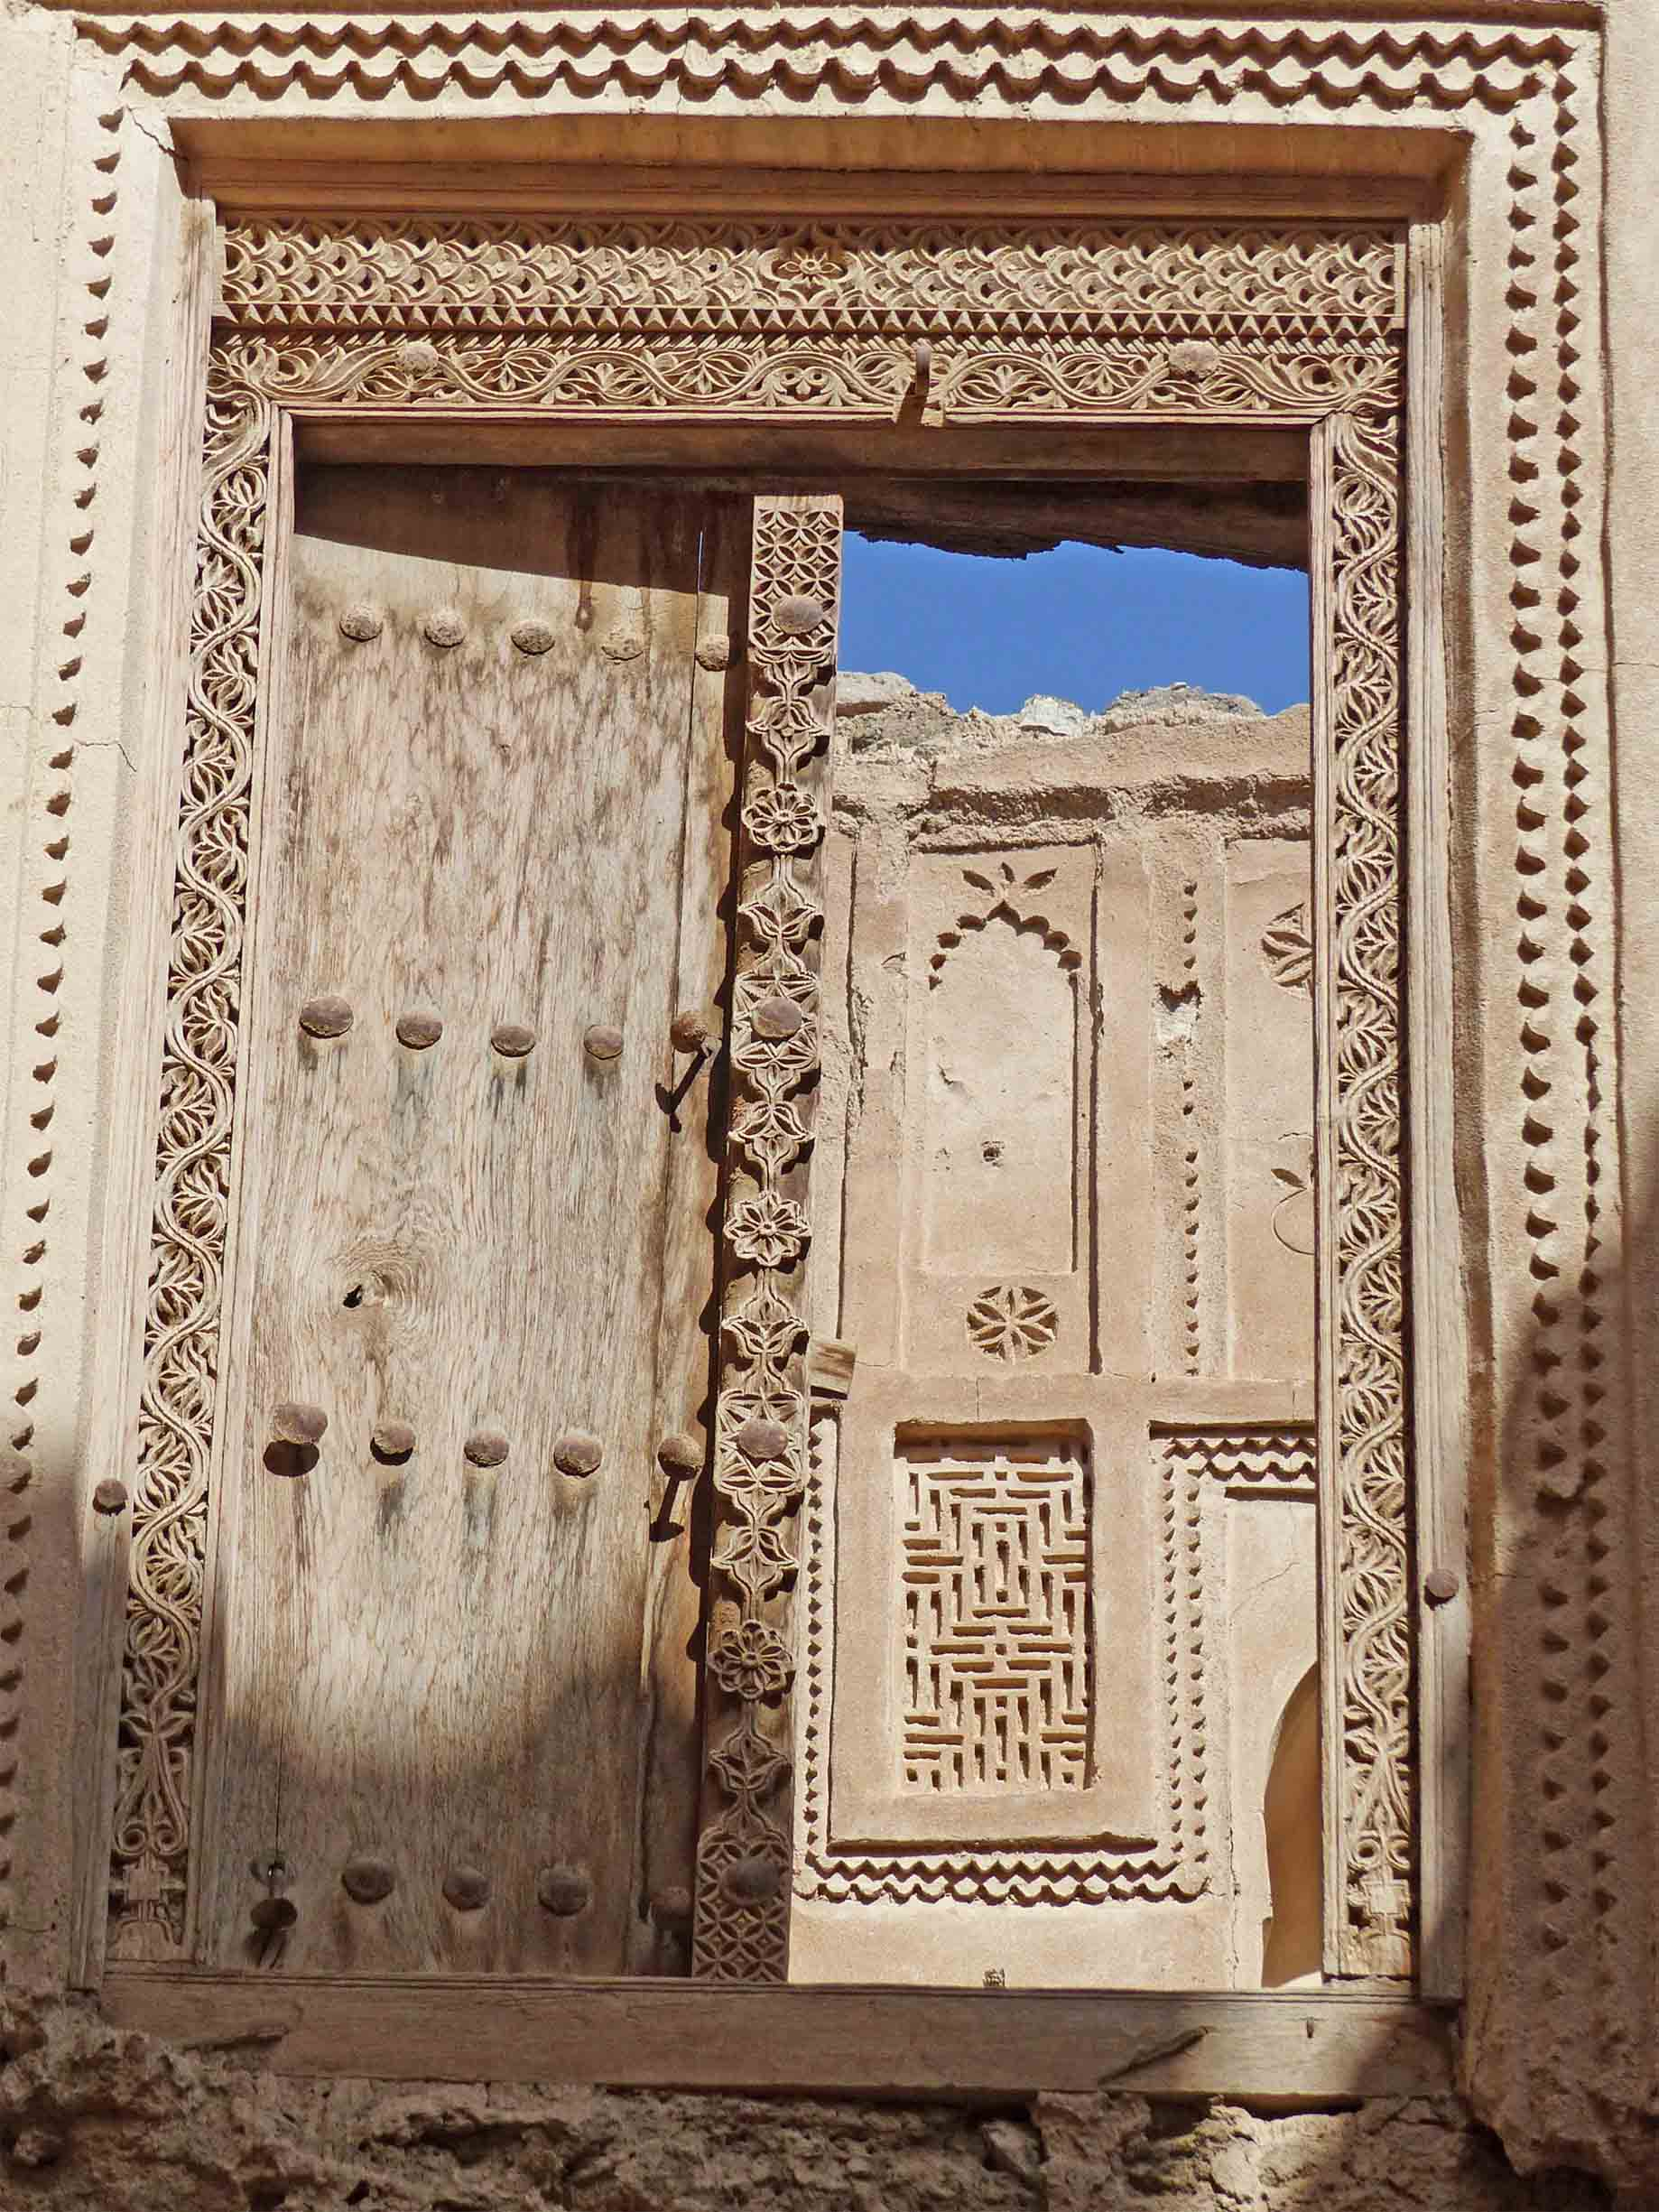 Ornate carved door and frame with carved wall beyond